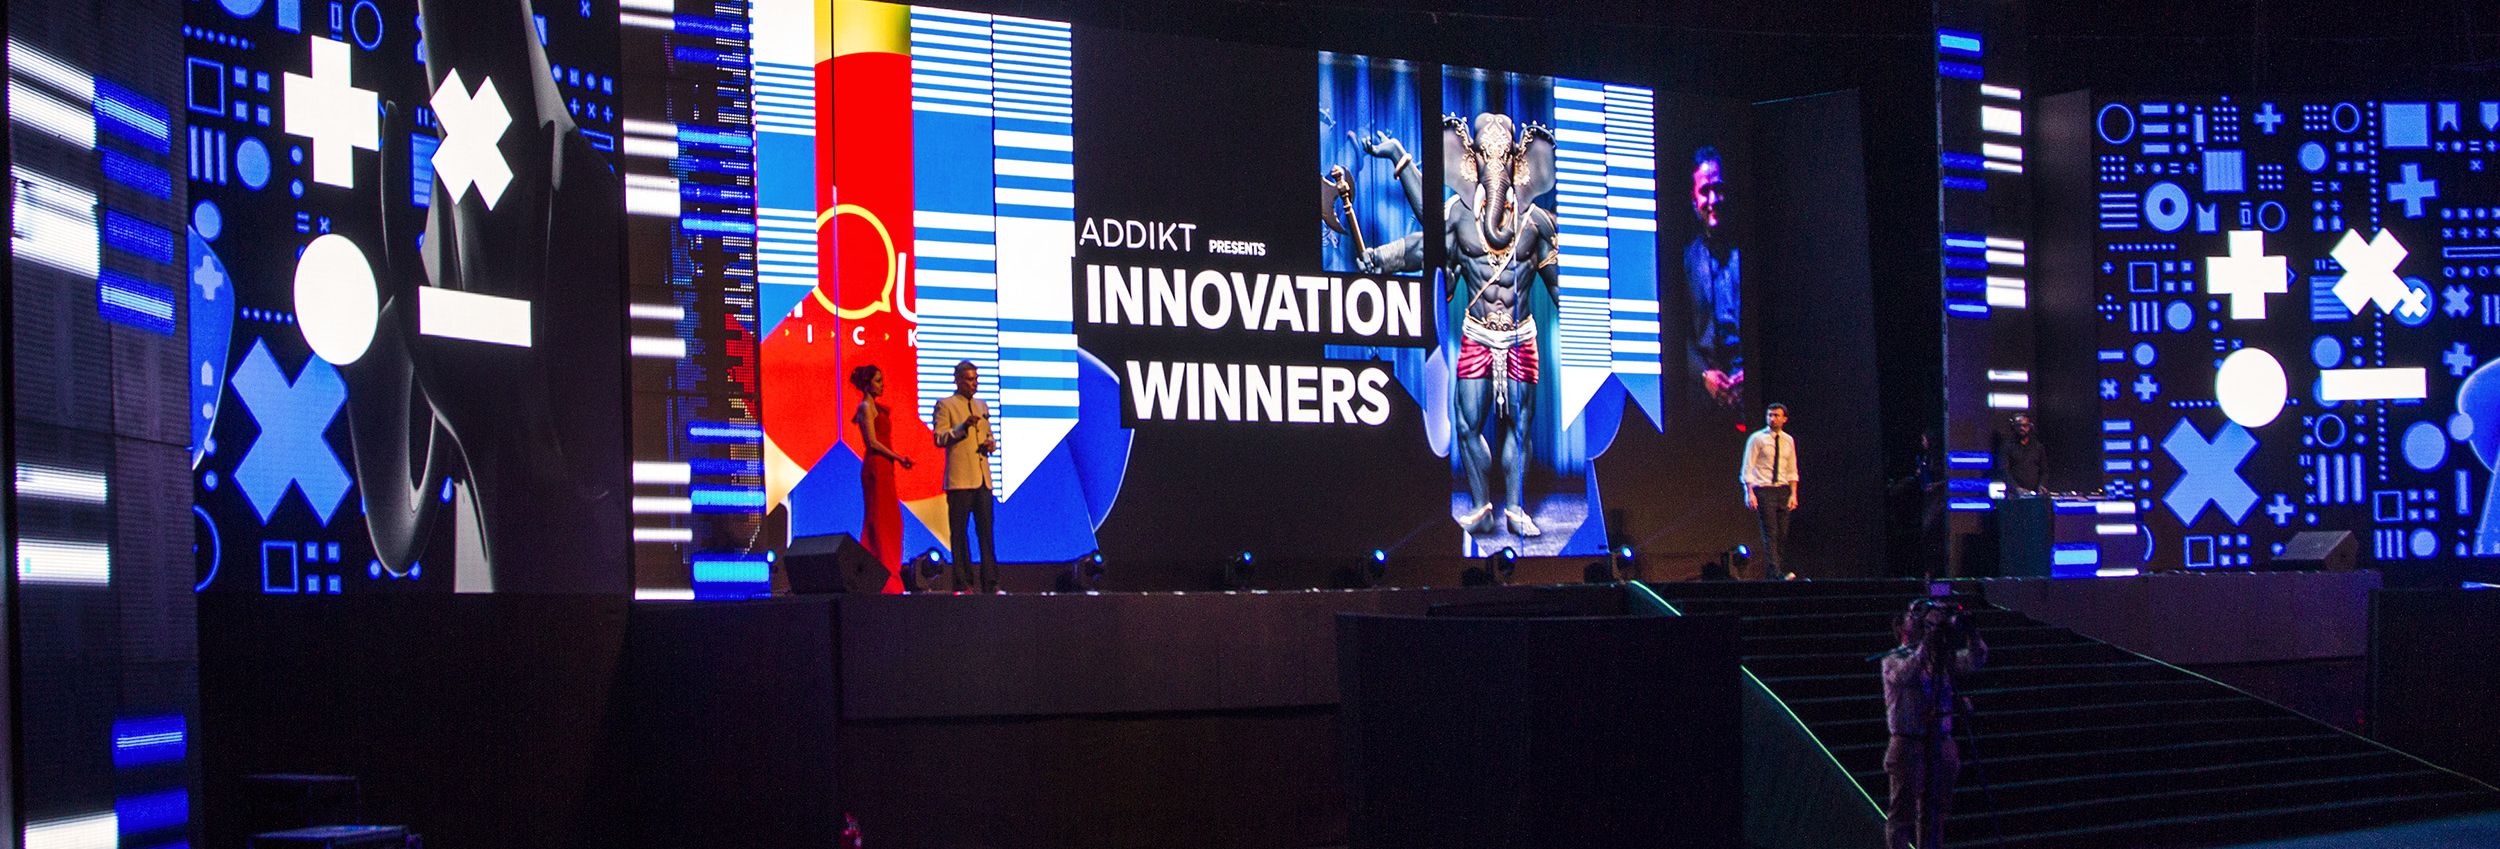 Addikt wint innovatieprijs in India